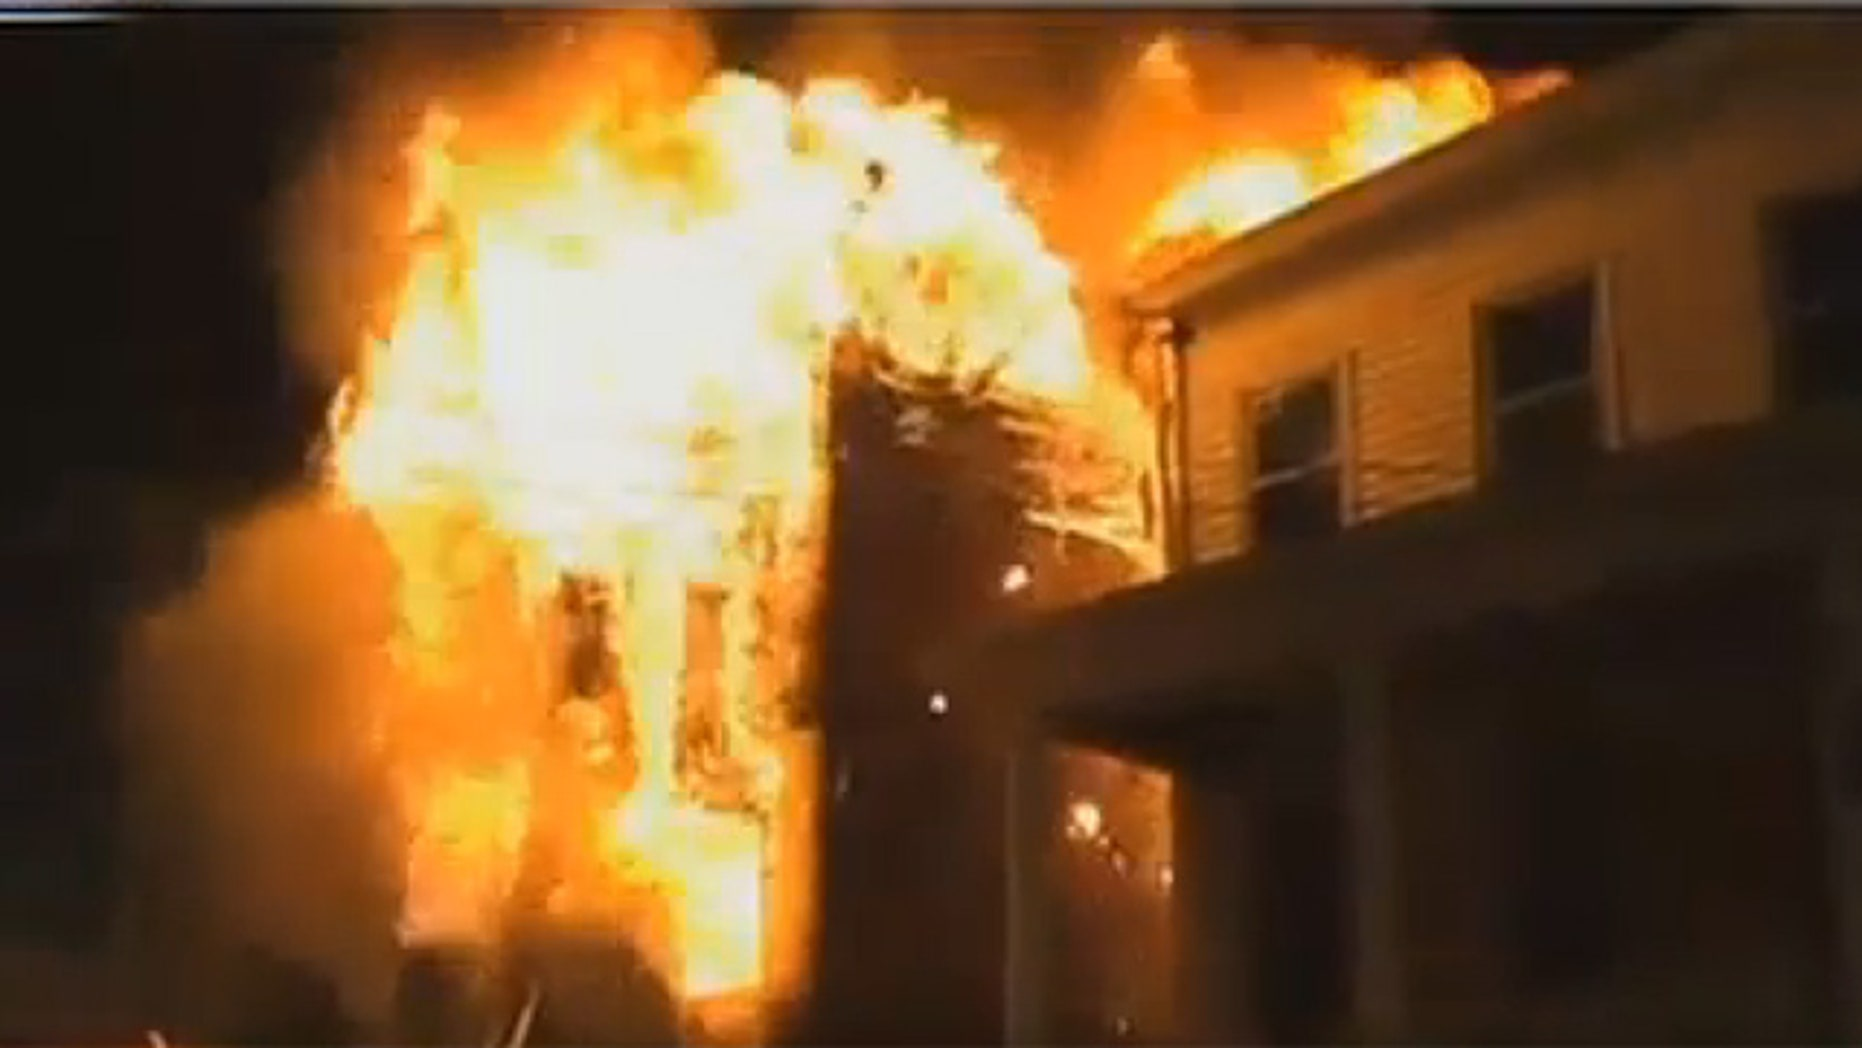 May 13, 2013: Officials say four children and two adults died in a house fire late Sunday.